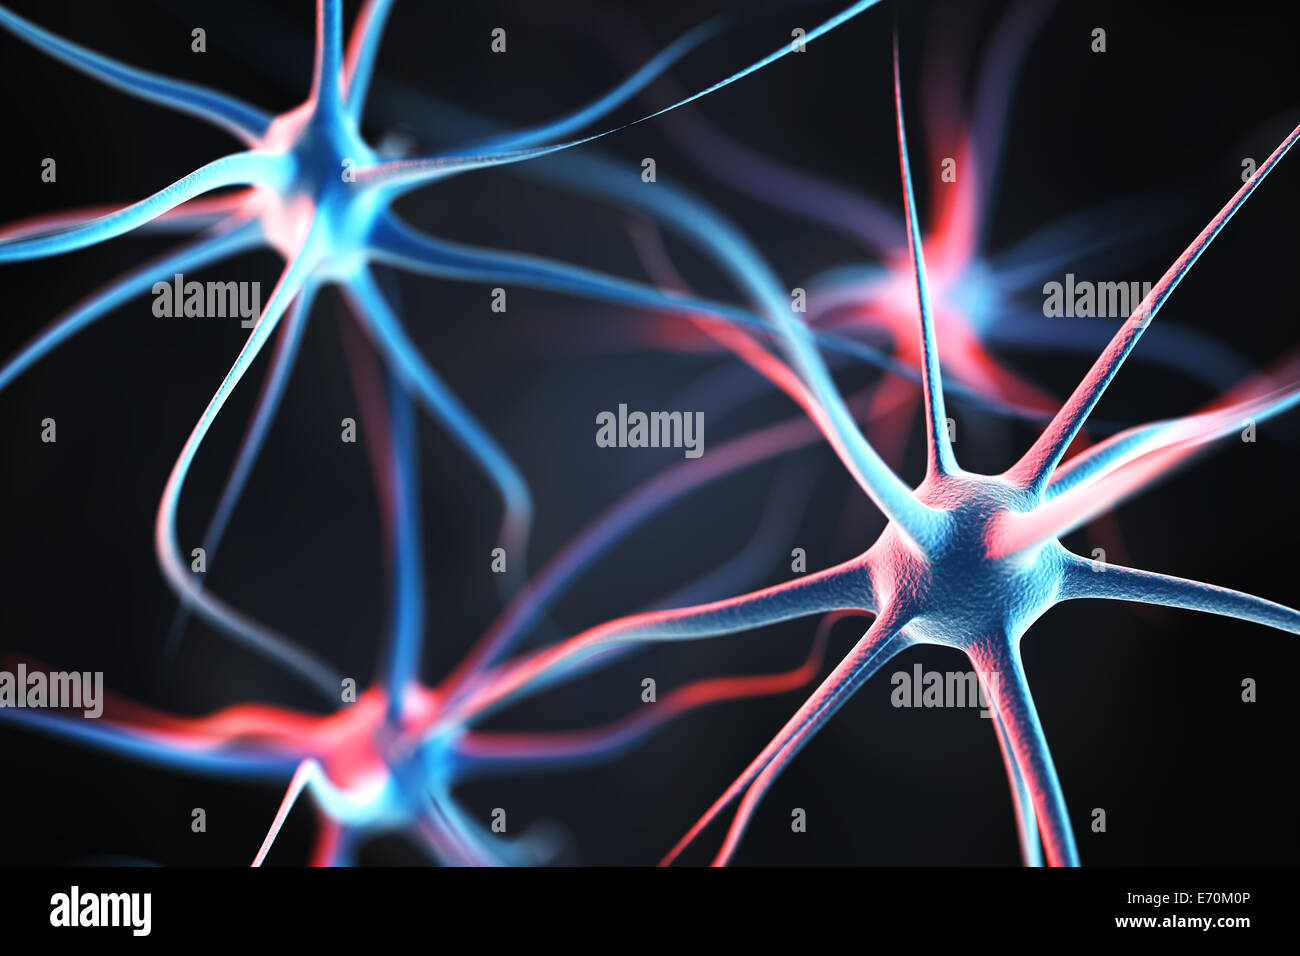 Neurons in the brain - Stock Image